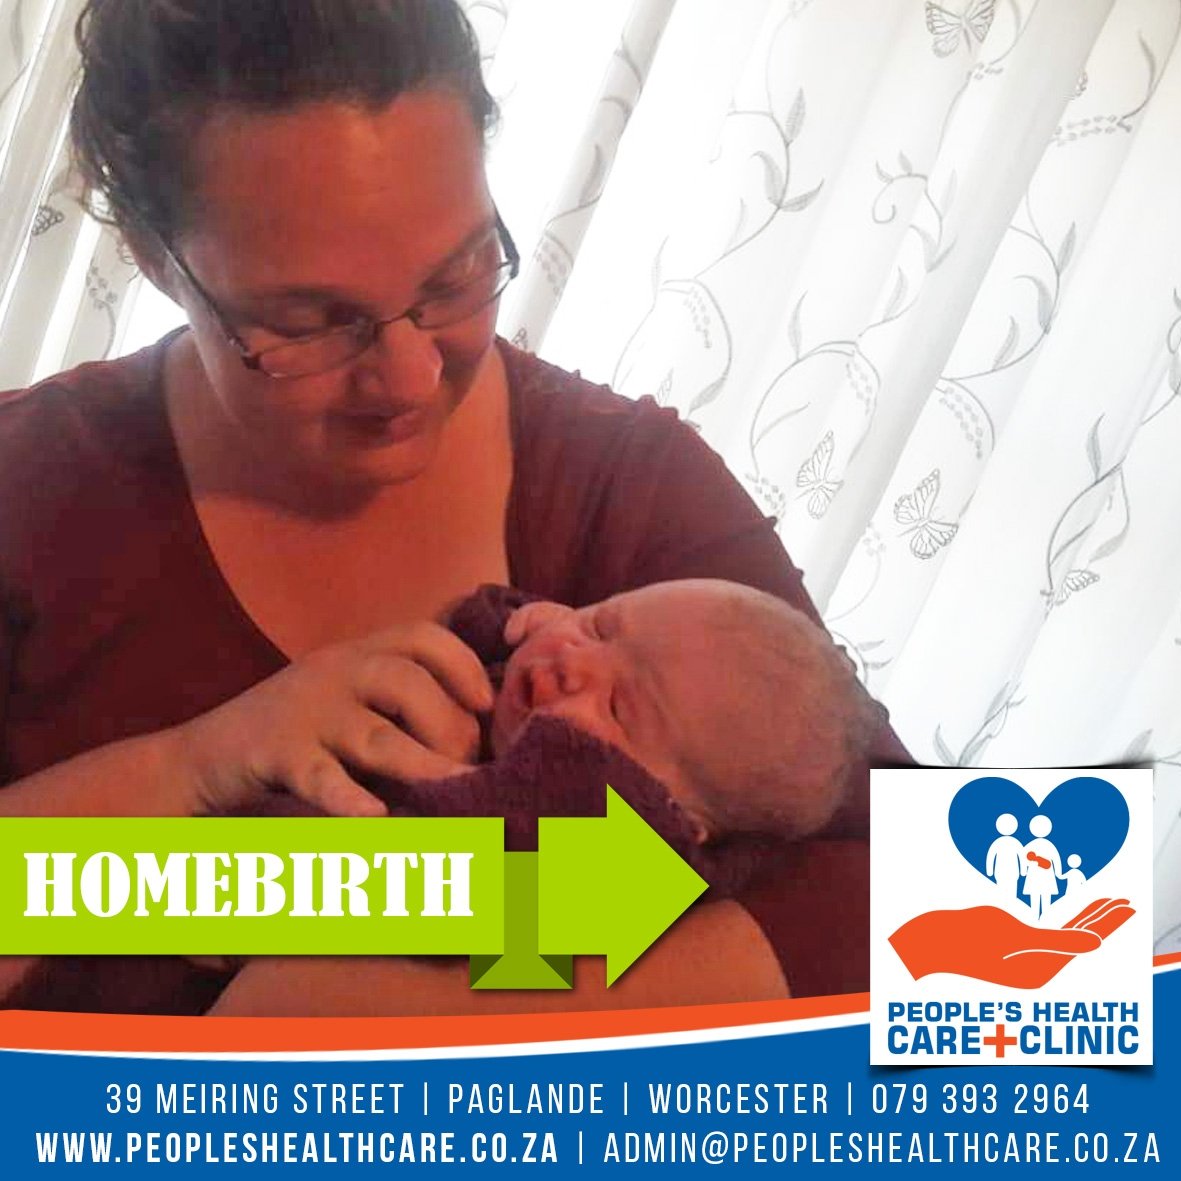 peoples-health-care-clinic-worcester-homebirth_1